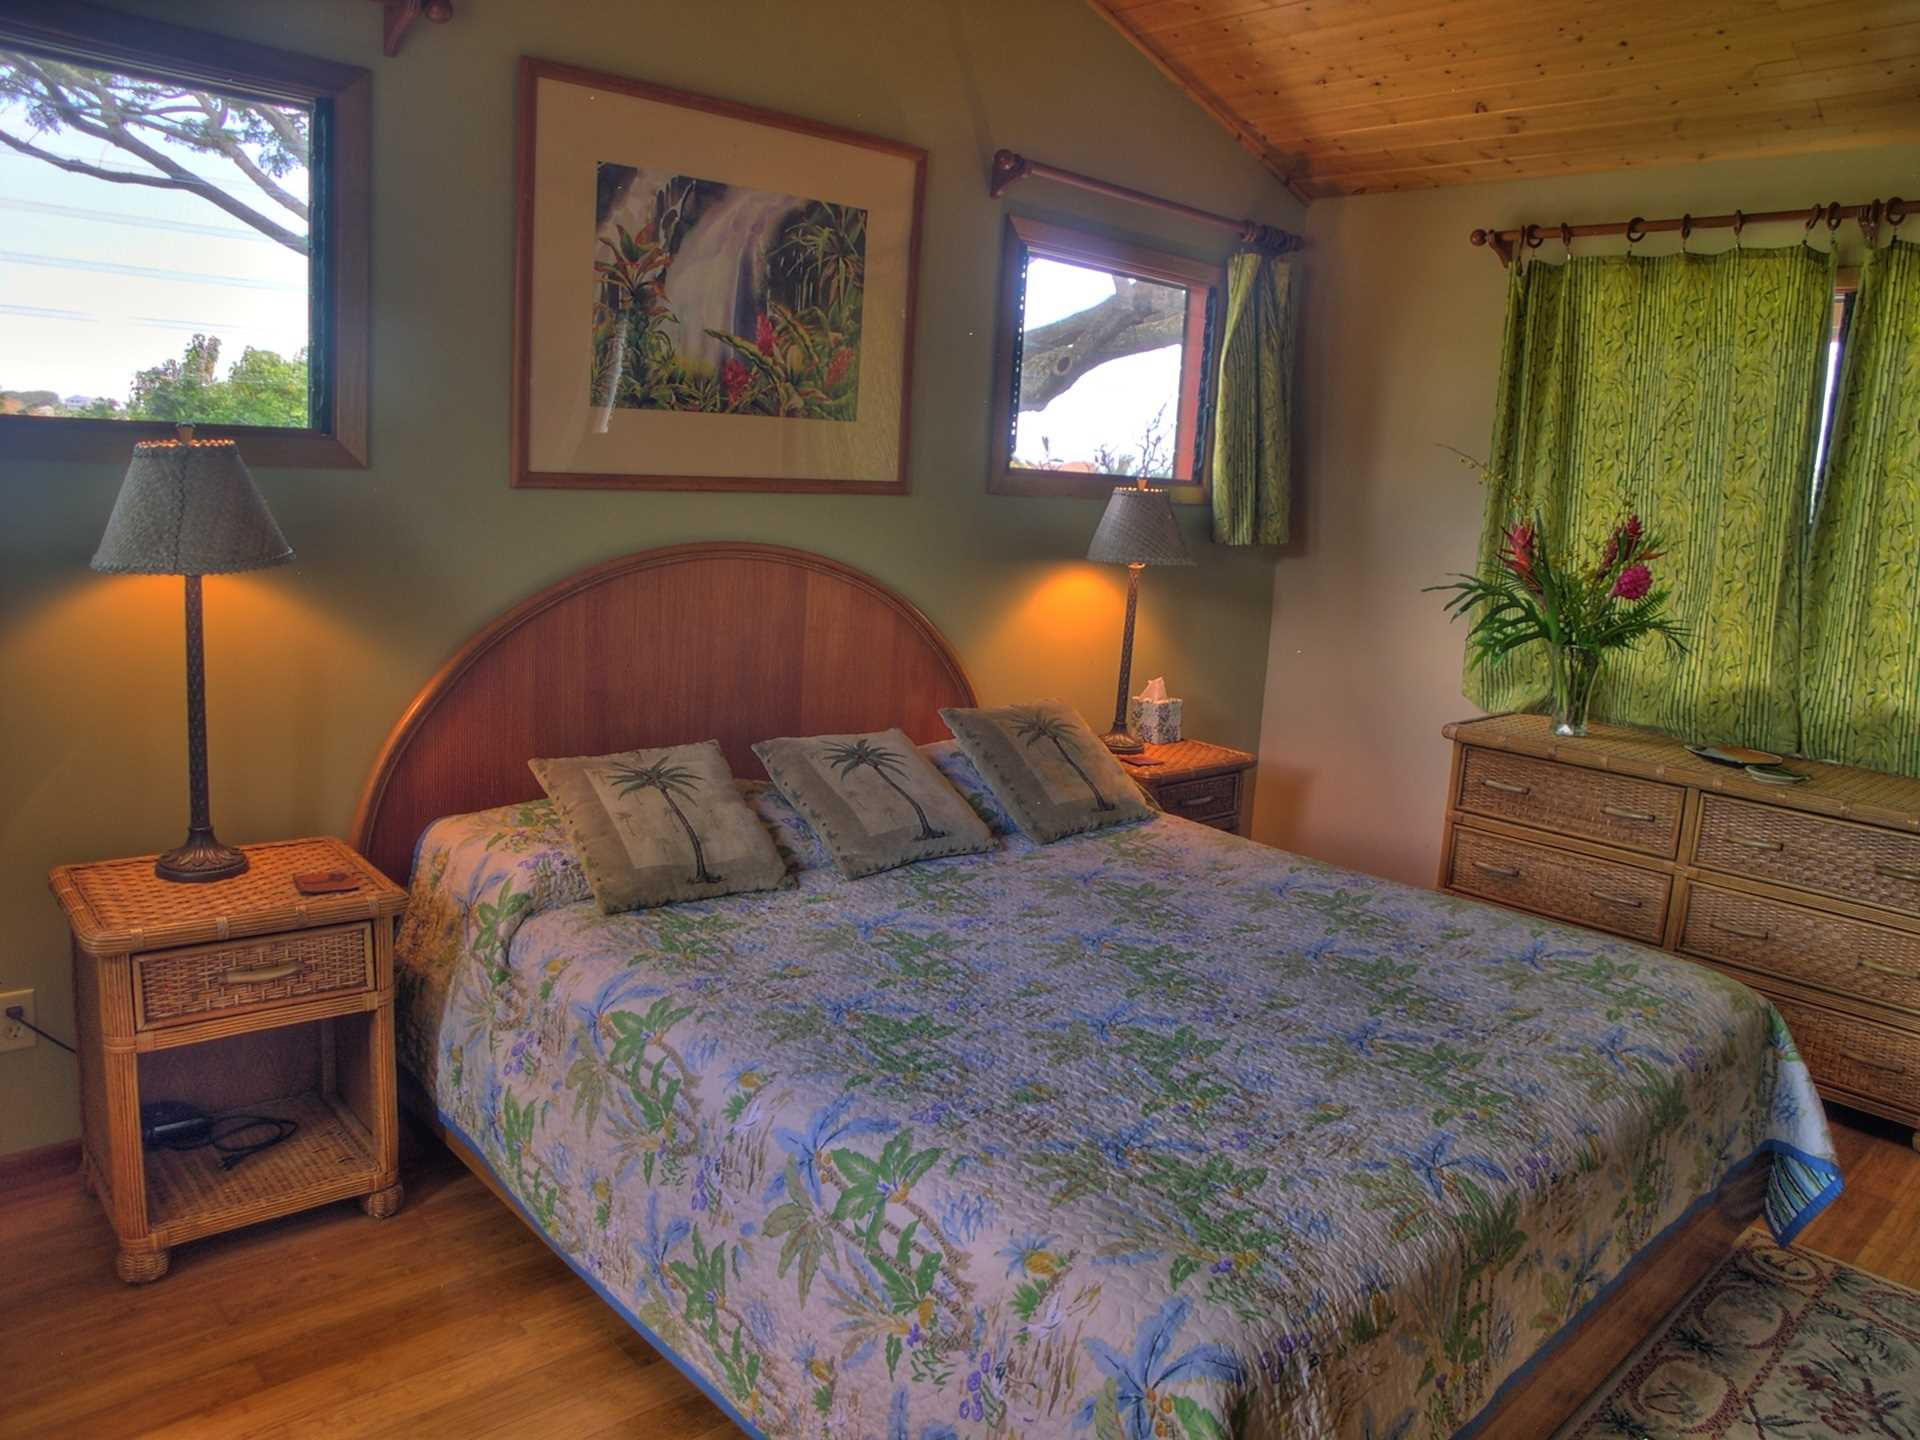 The upper master suite is a delightful, airy room above the